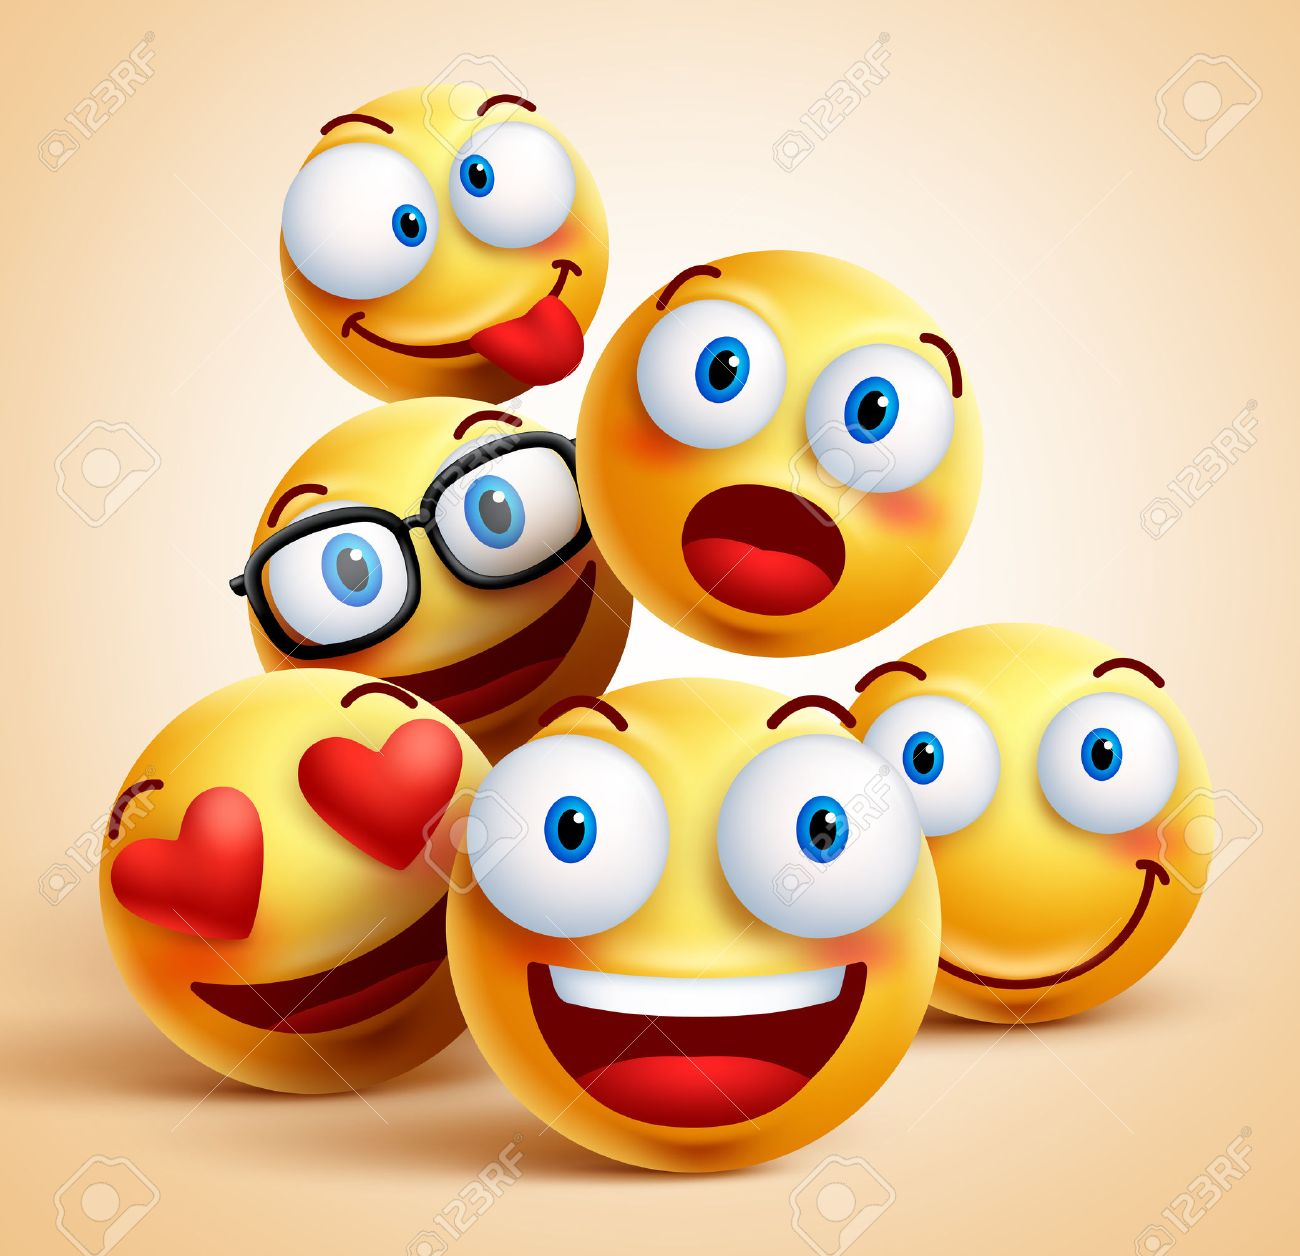 smiley faces group of vector emoticon characters with funny facial